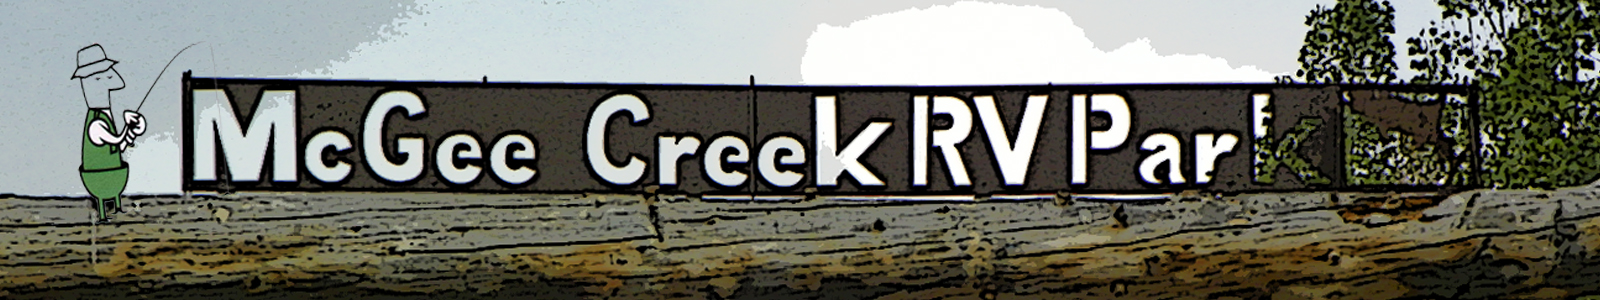 McGee Creek RV Campground Logo